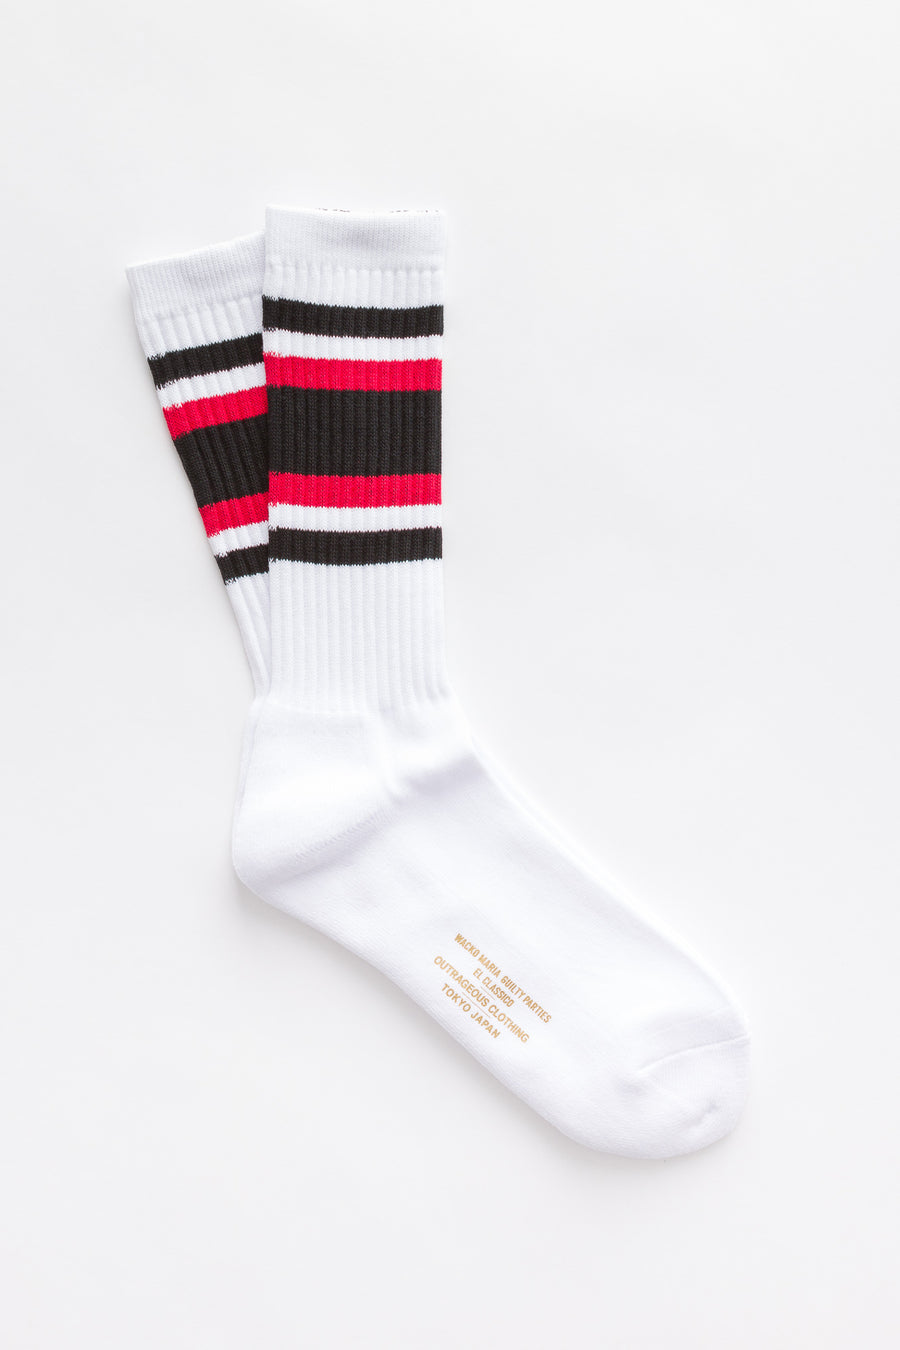 Wacko Maria Skater Socks (Type-1) in White-Red - Notre